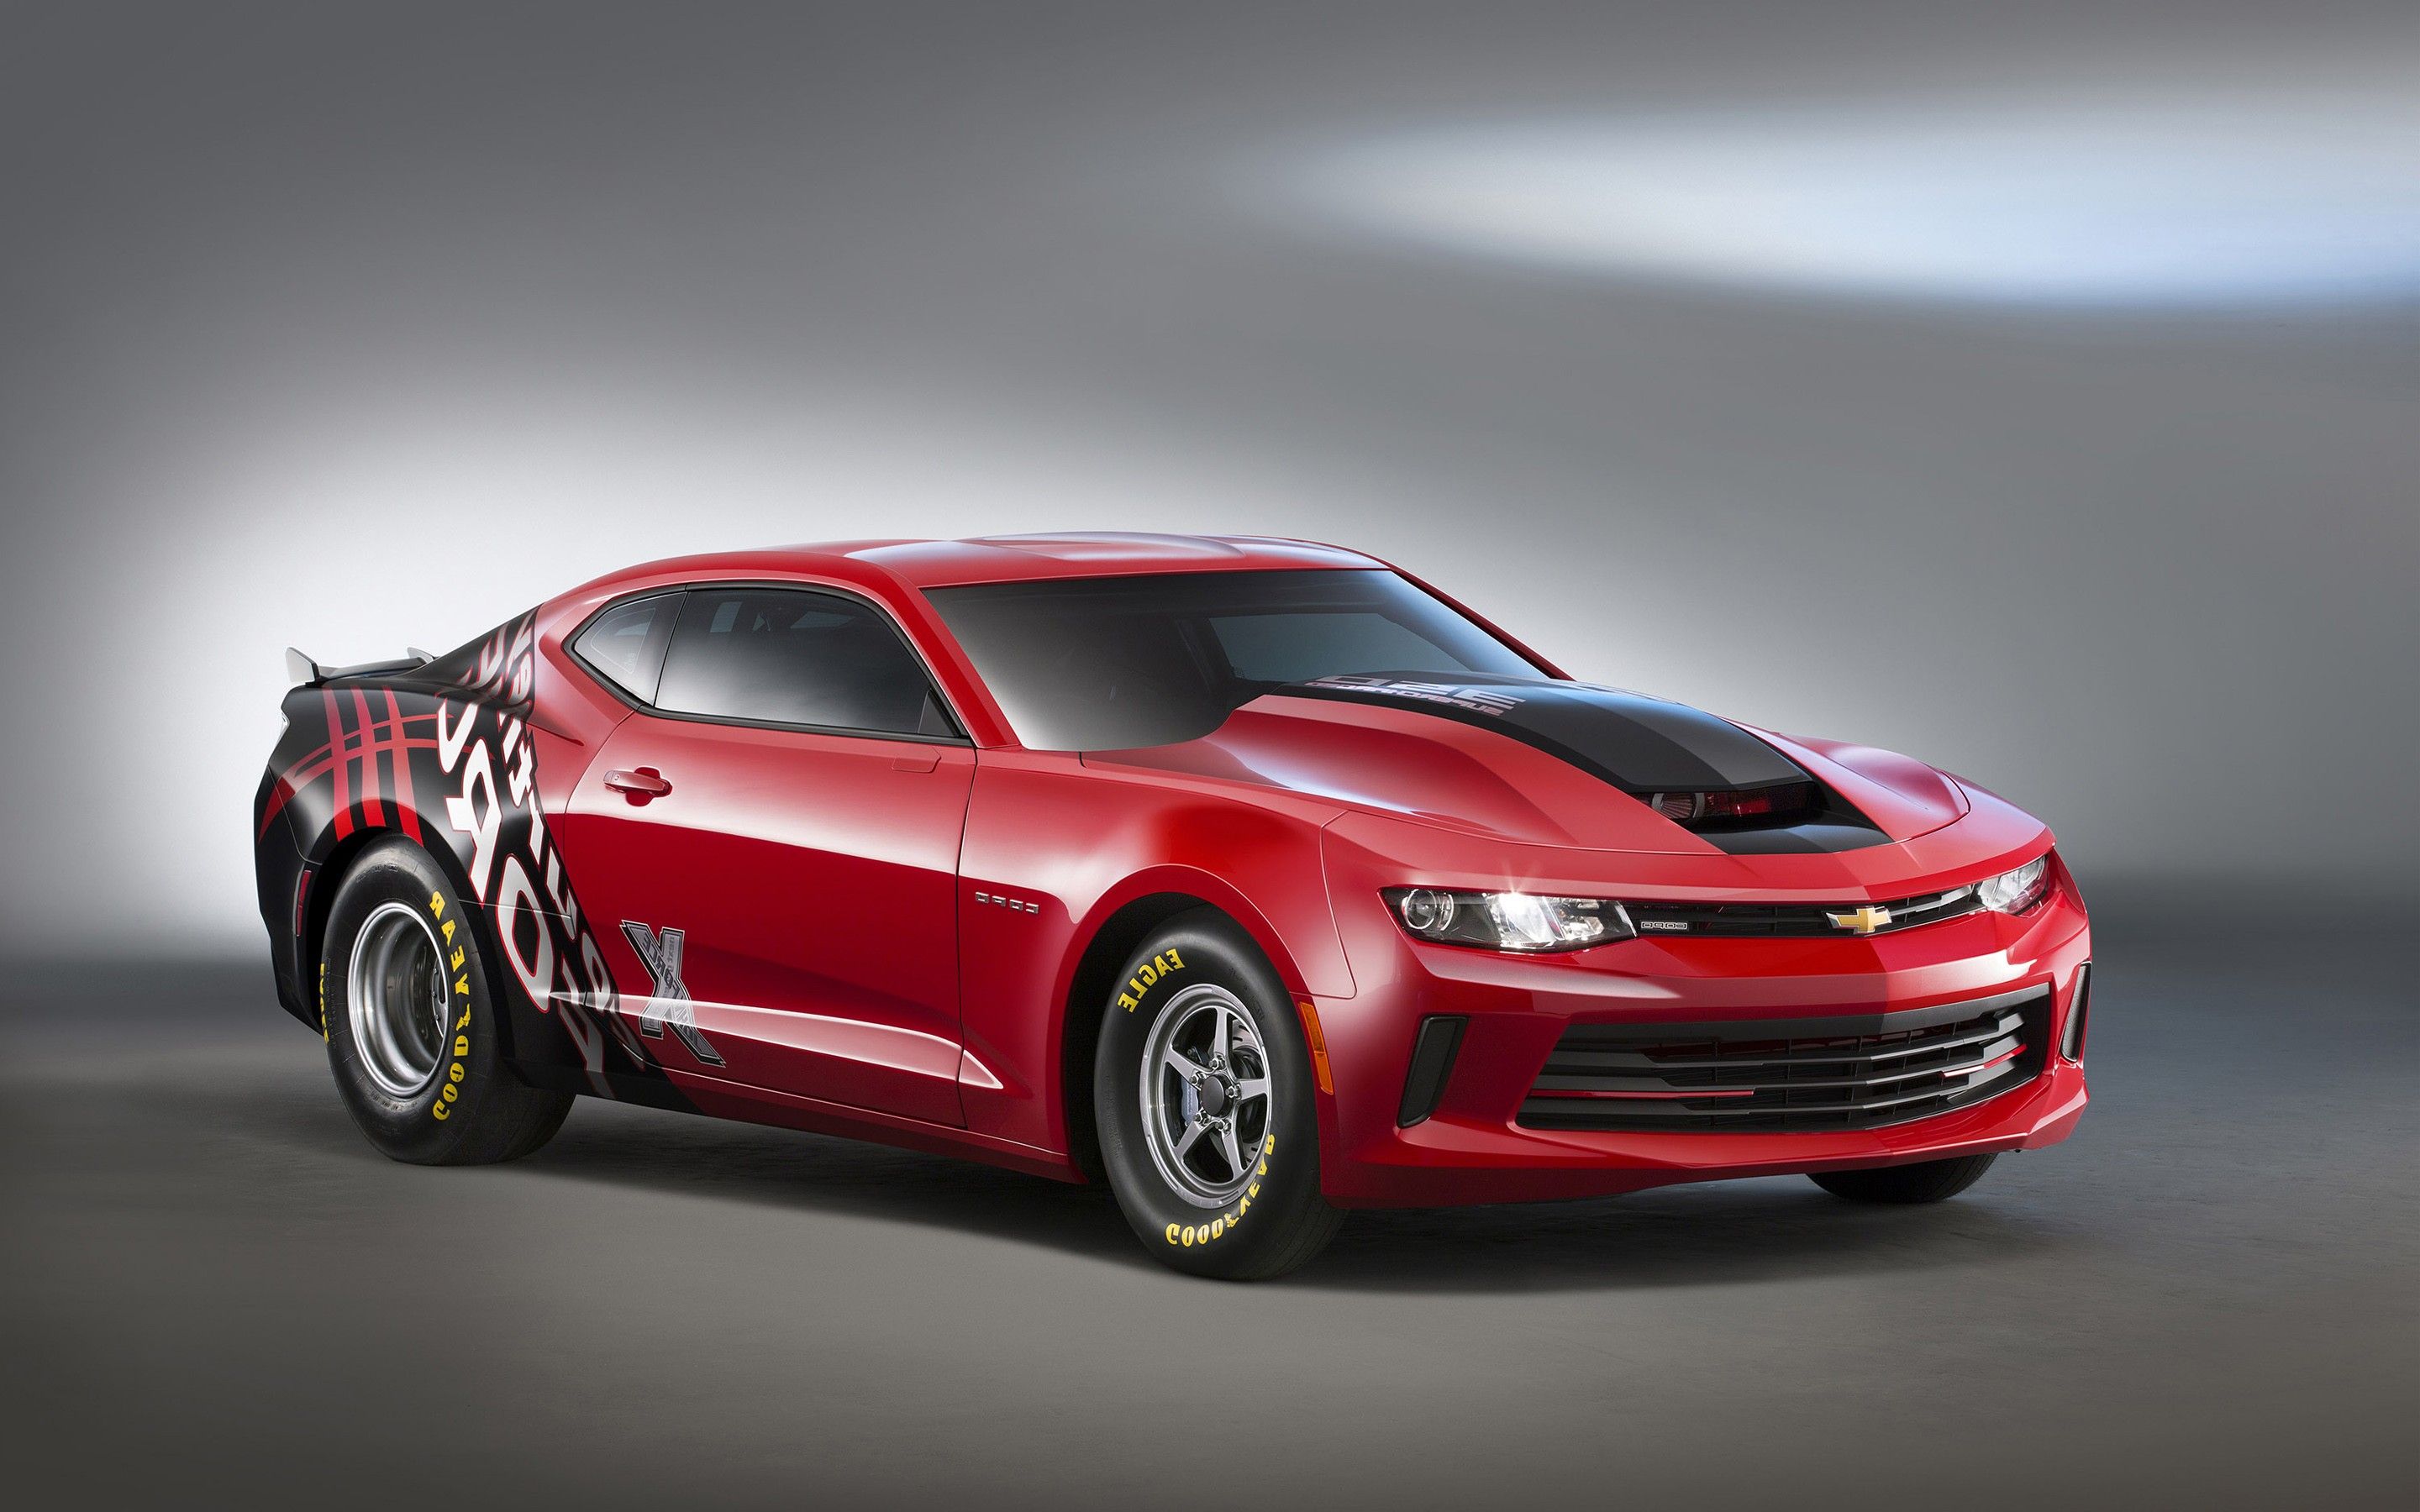 2048x1152 Chevrolet Copo Camaro 2048x1152 Resolution HD 4k ...